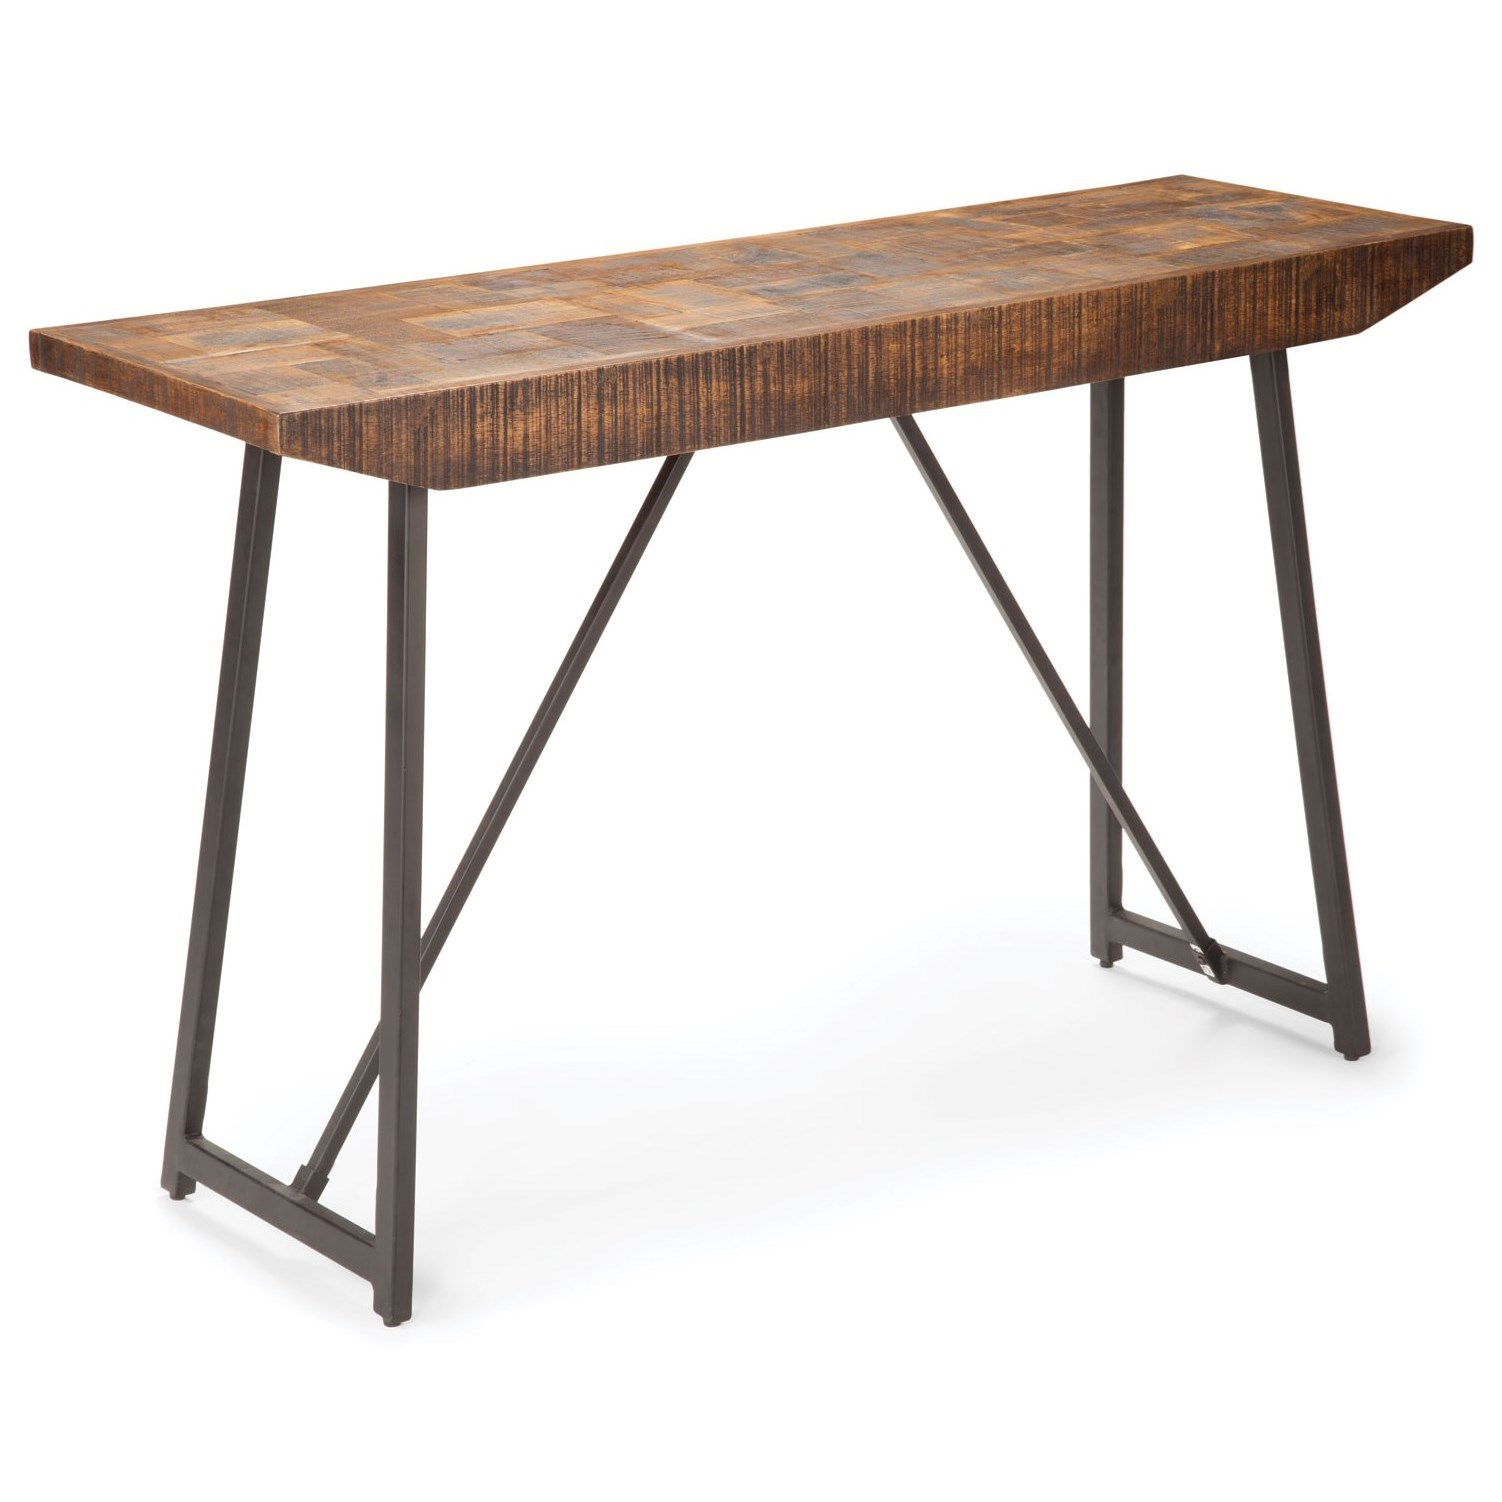 Walden Rustic Industrial Sofa Table with Parquet Pattern Wood Top by Vendor  3985 at Becker Furniture World